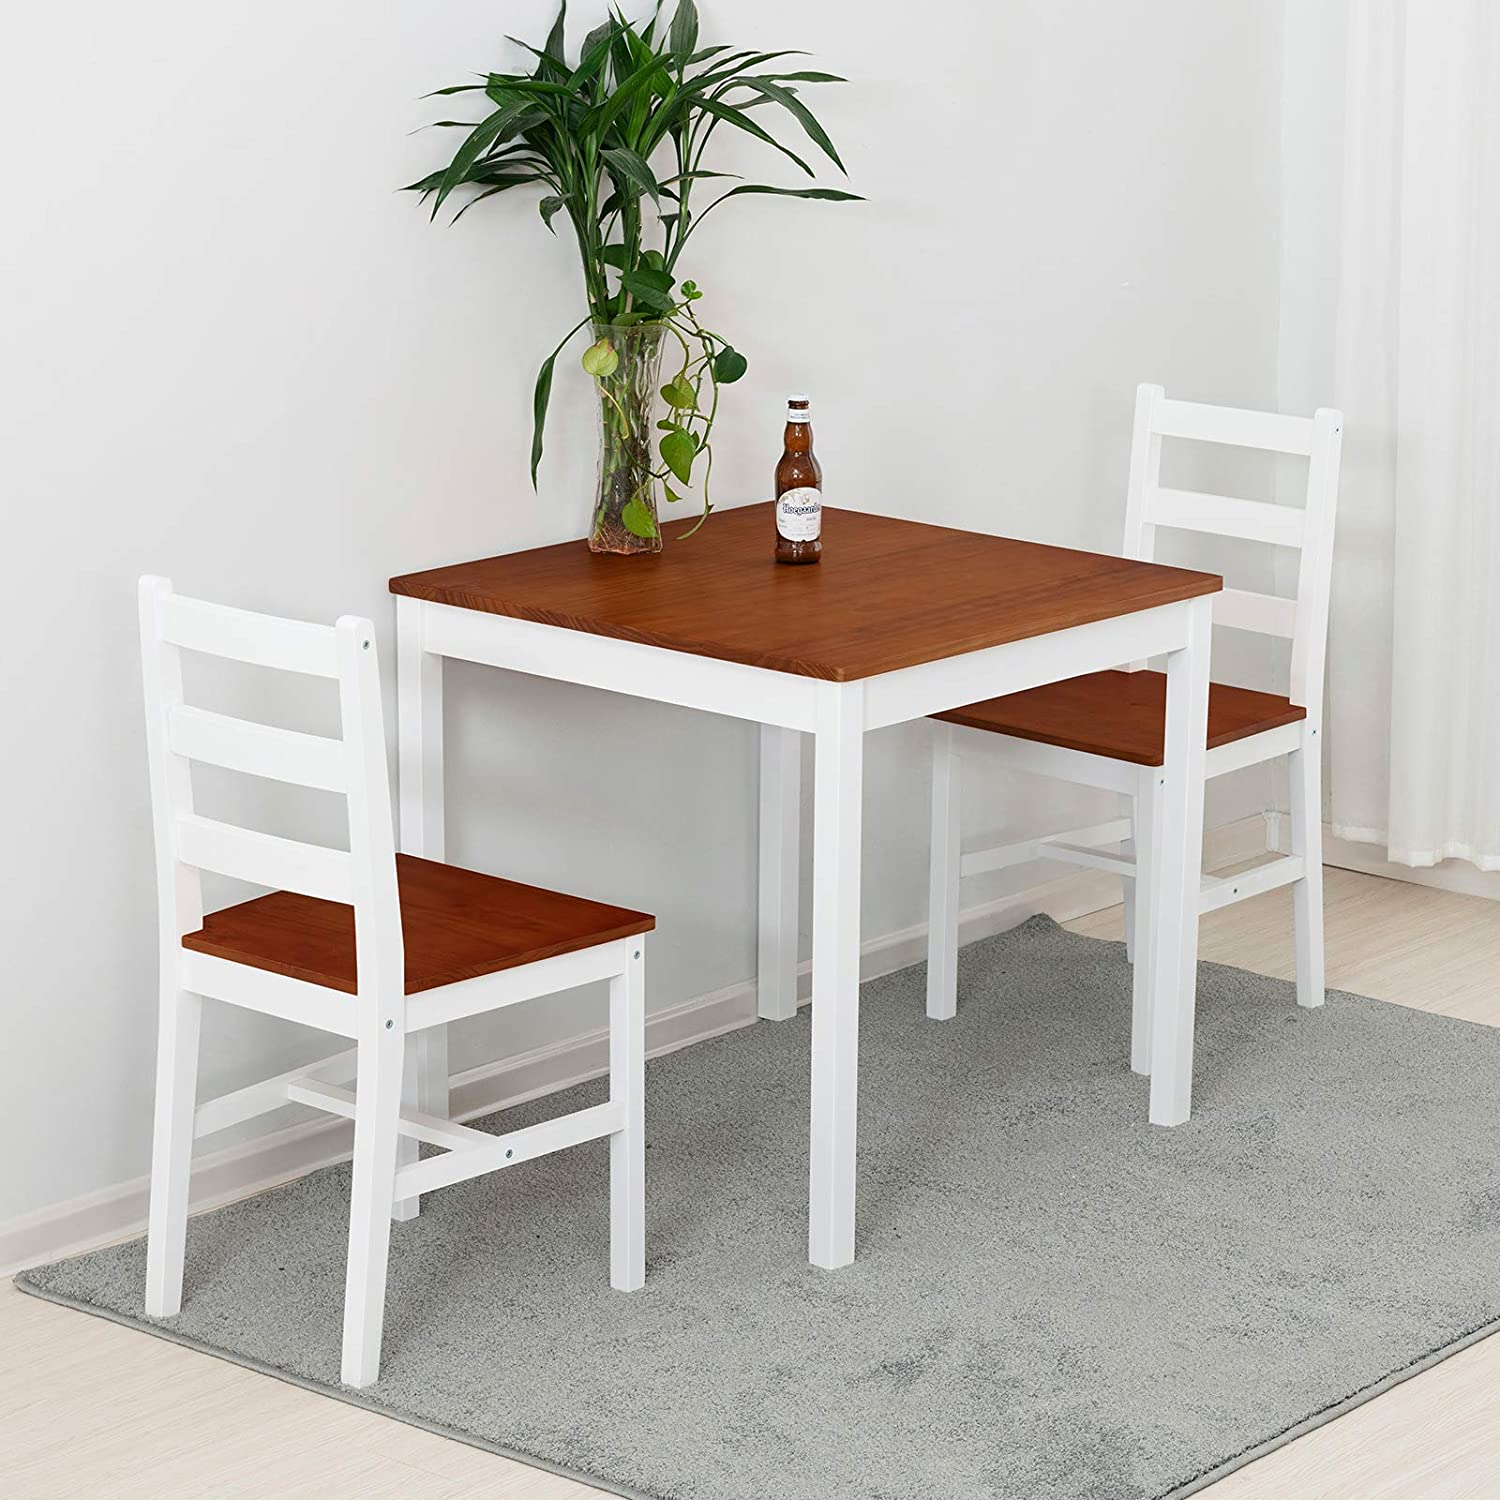 Mecor 3 Pc Dining Set Wood Kitchen Table Set With 2 Chairs Natural